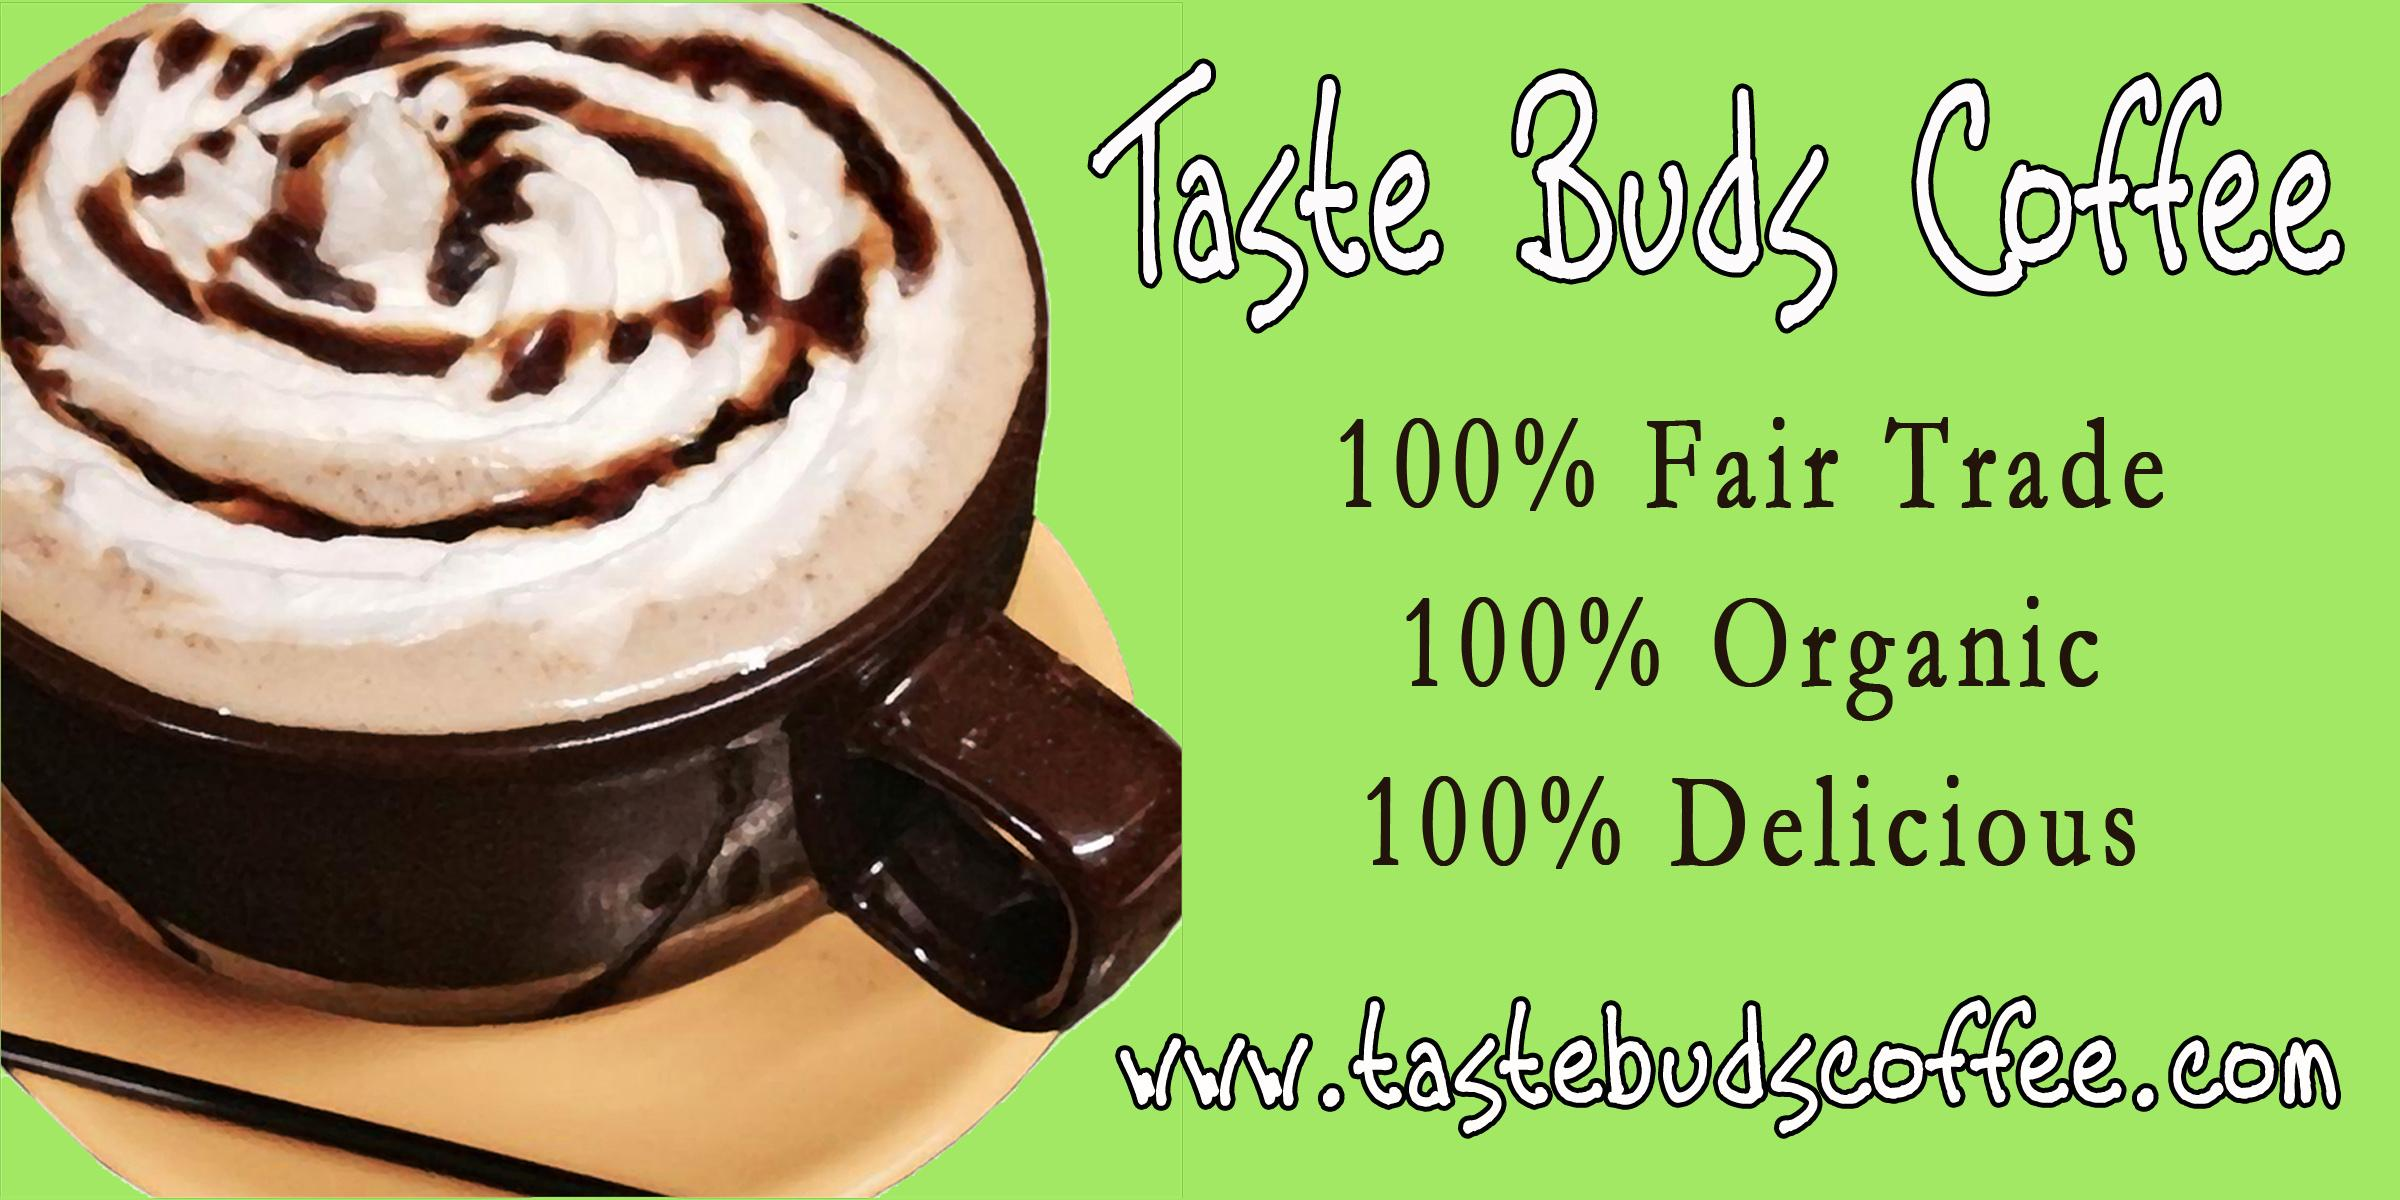 Taste Buds Coffee